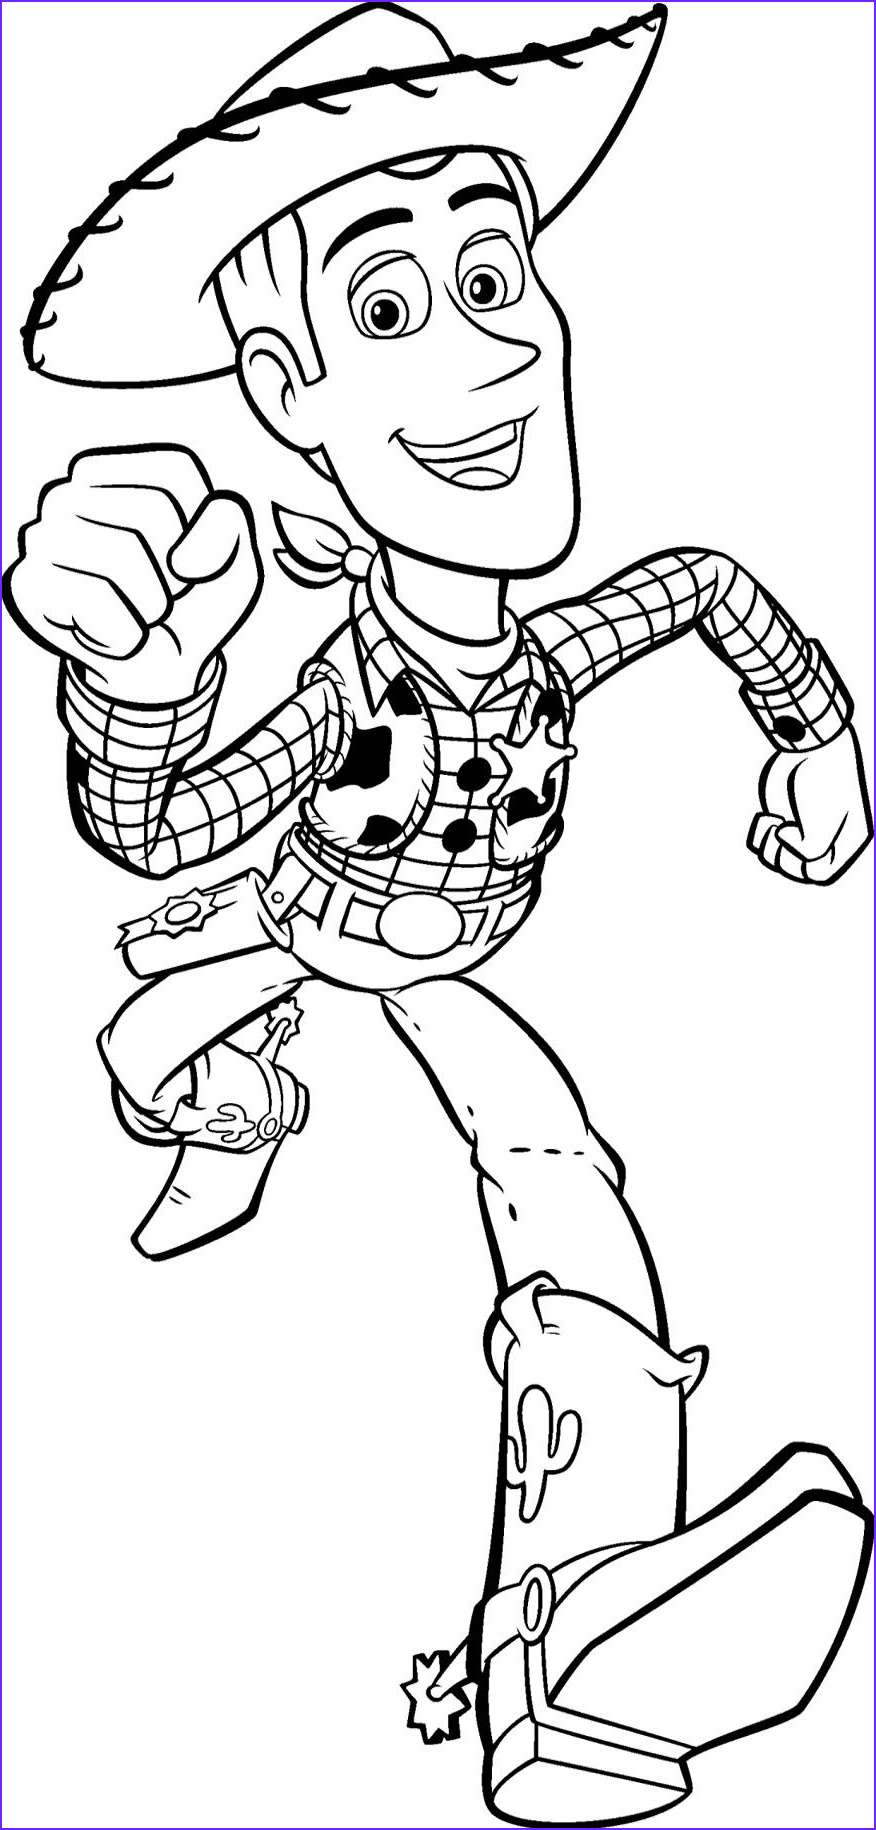 Toy Story Coloring Book New Images toy Story Woody Runs Fast Coloring Pages Education